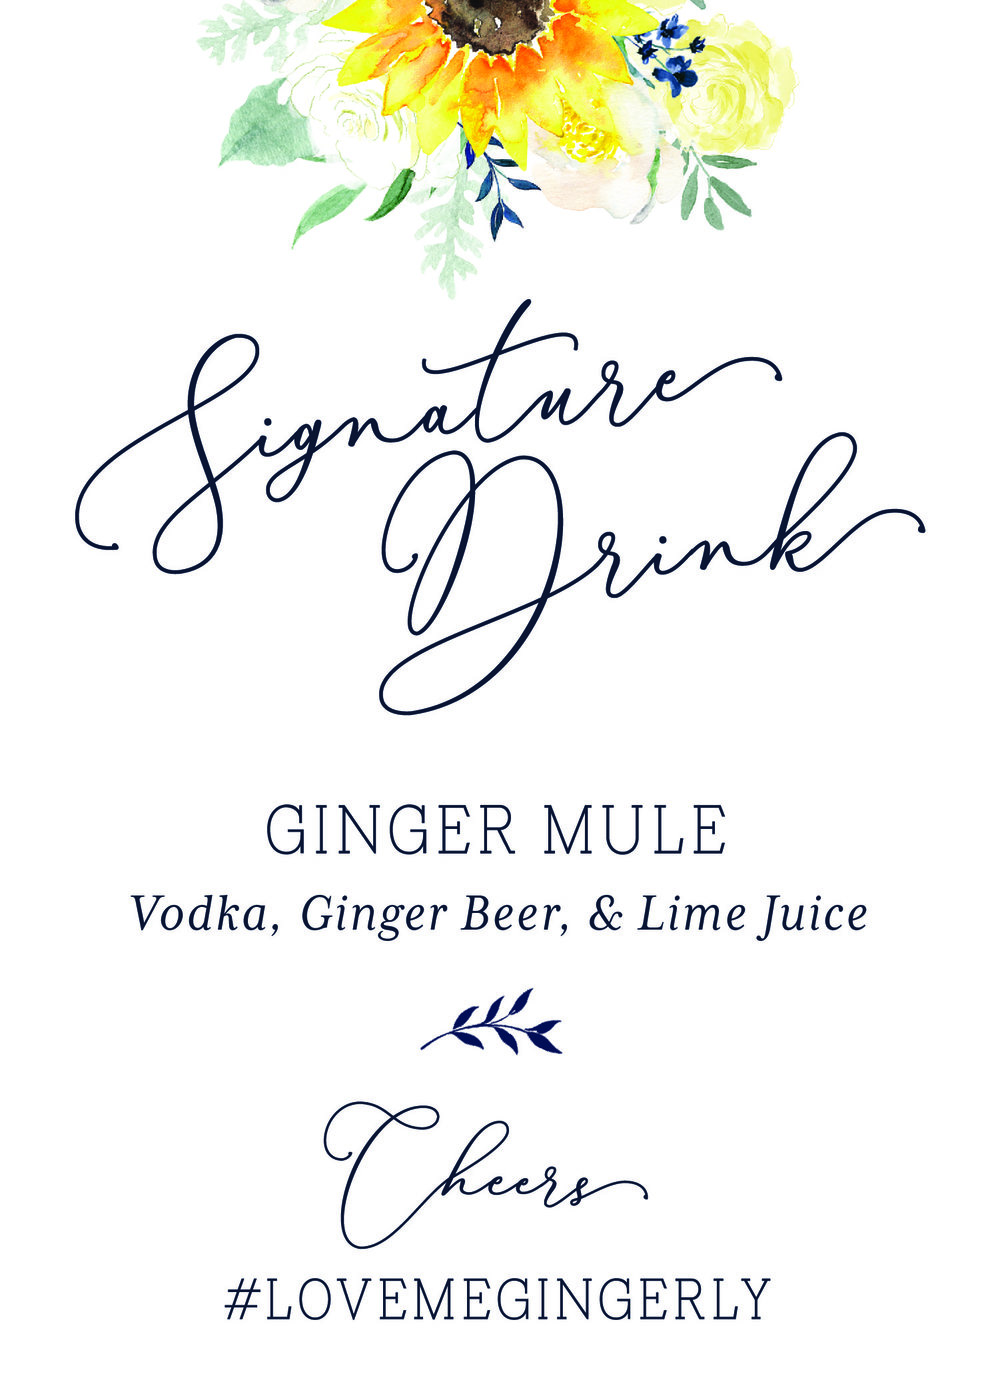 DRINK-SIGN_5x7_Proof2.jpg